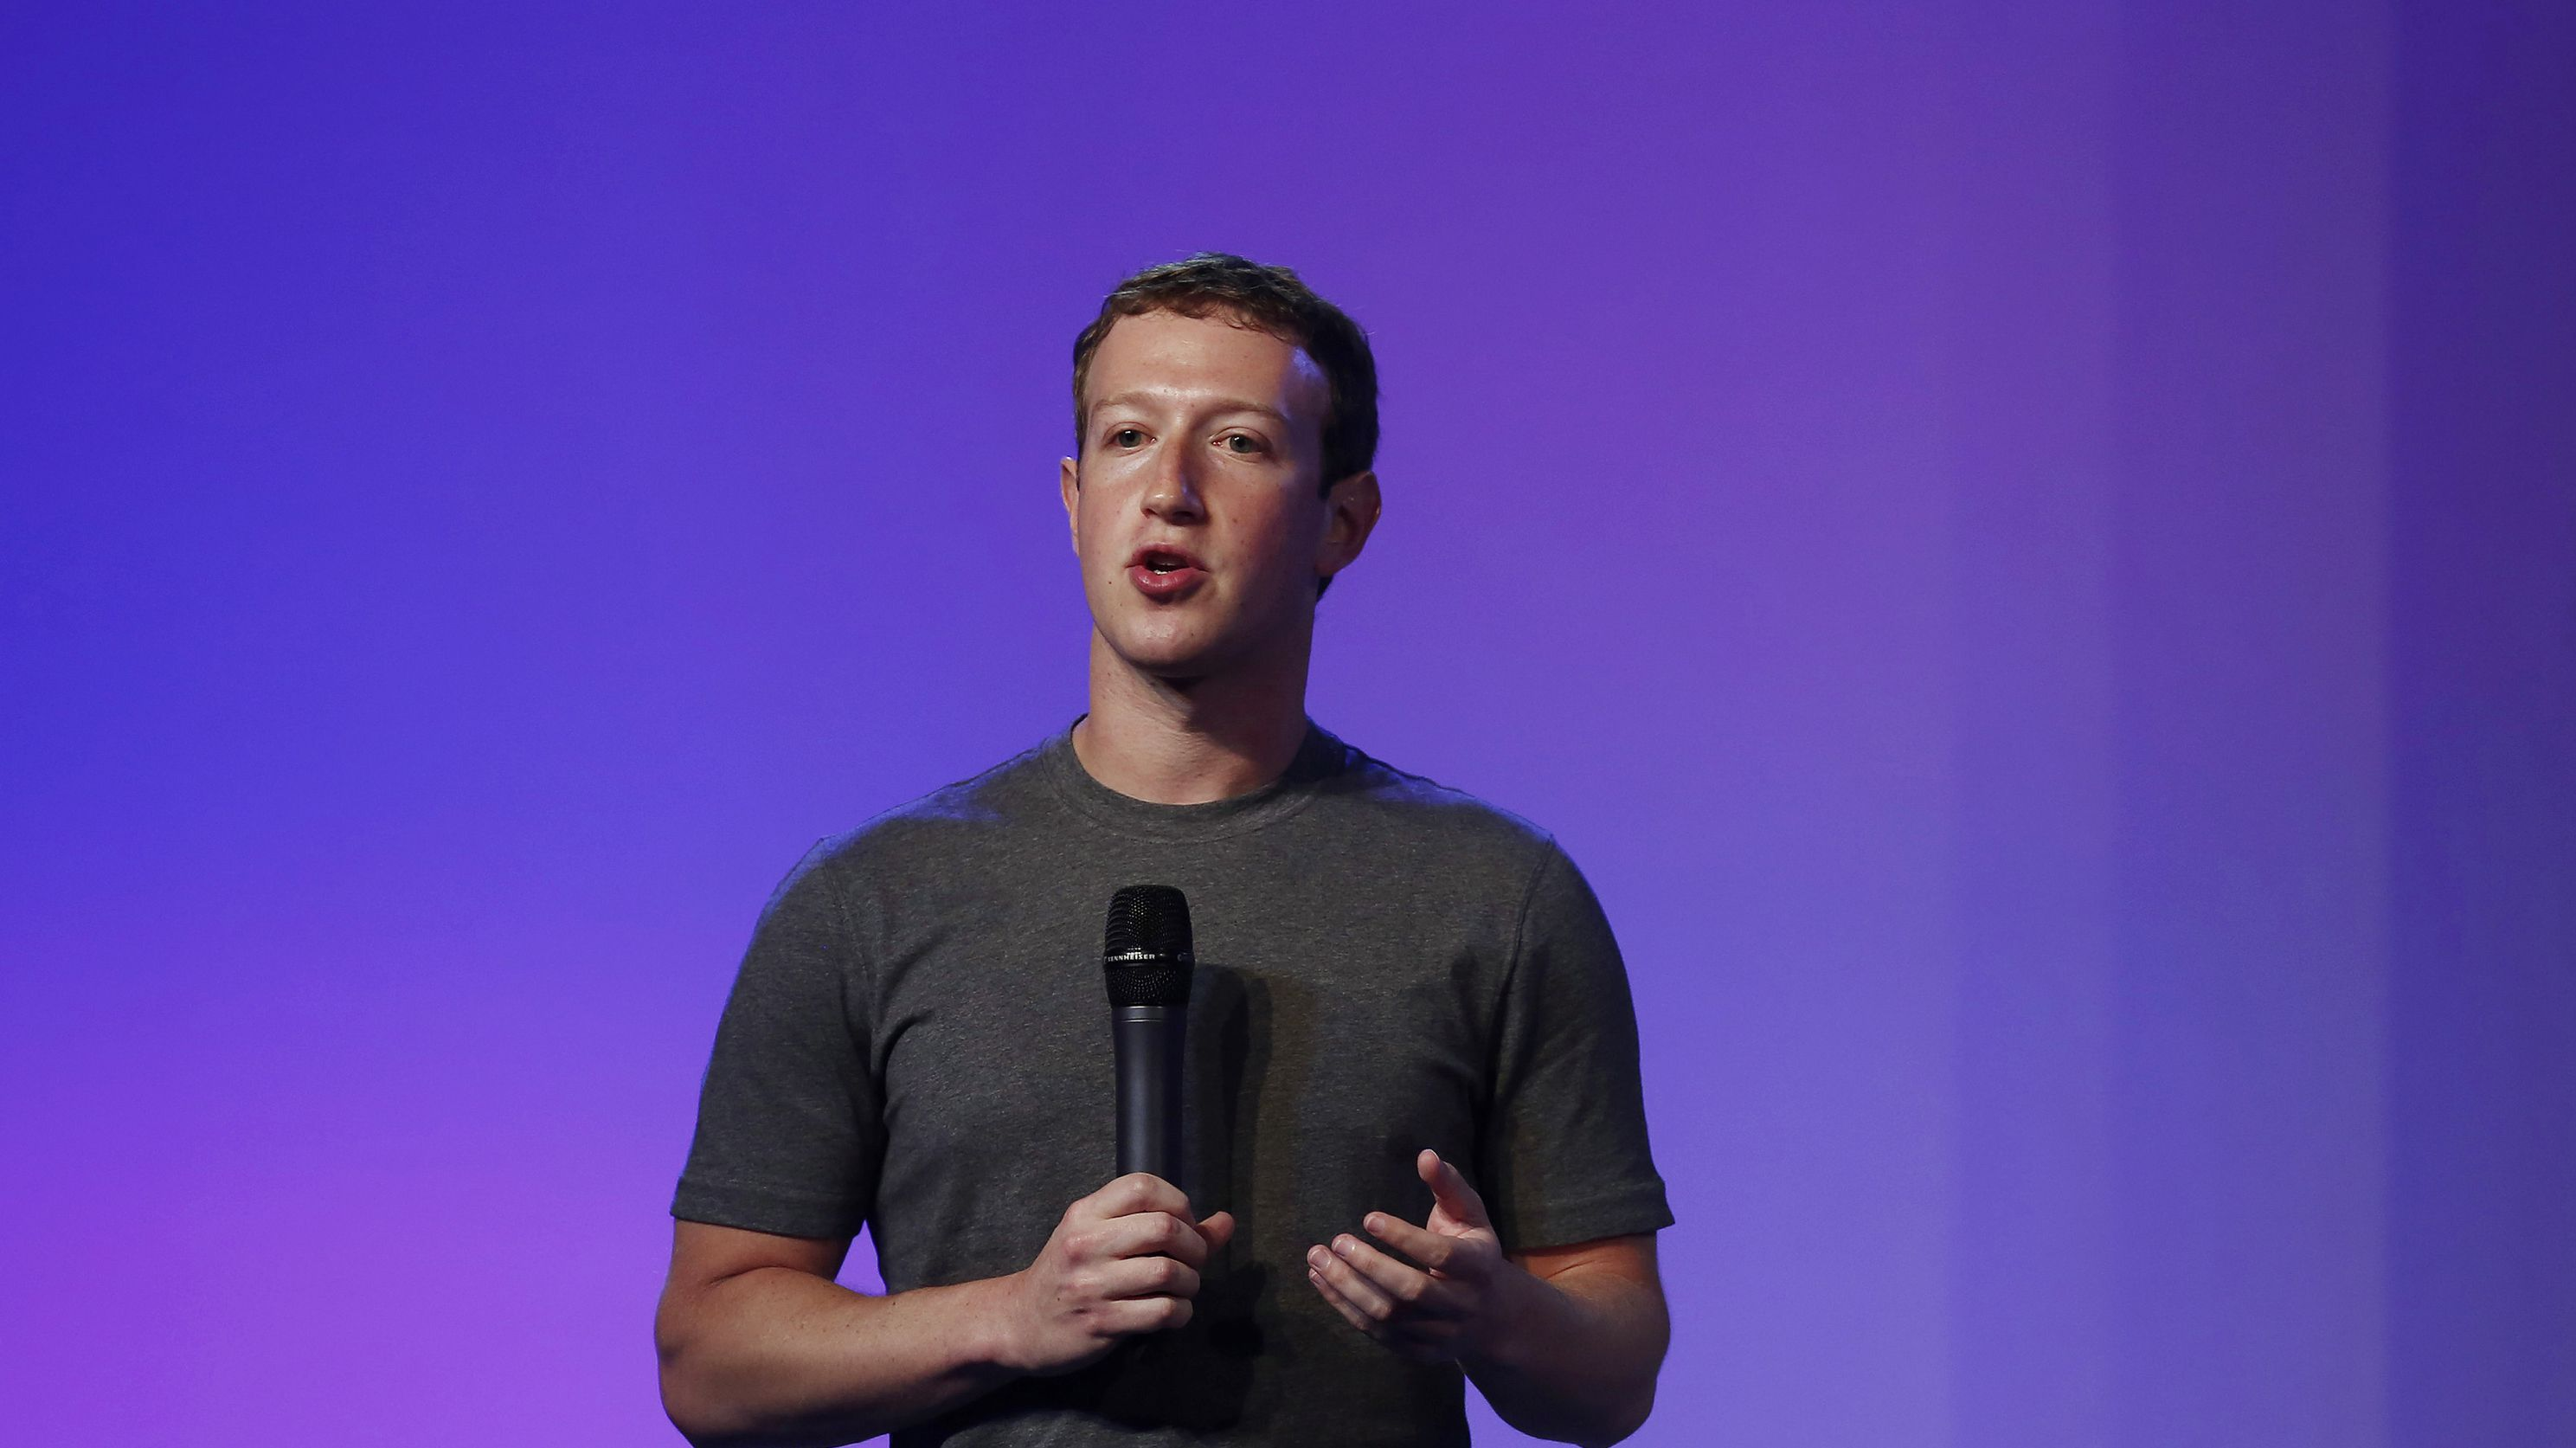 Mark Zuckerberg, founder and CEO of Facebook, addresses a gathering during the Internet.org Summit in New Delhi October 9, 2014. Facebook Inc, which closed its acquisition of mobile messaging service WhatsApp on Monday, has no near-term plan to make money from the service, Zuckerberg said on Thursday. REUTERS/Adnan Abidi